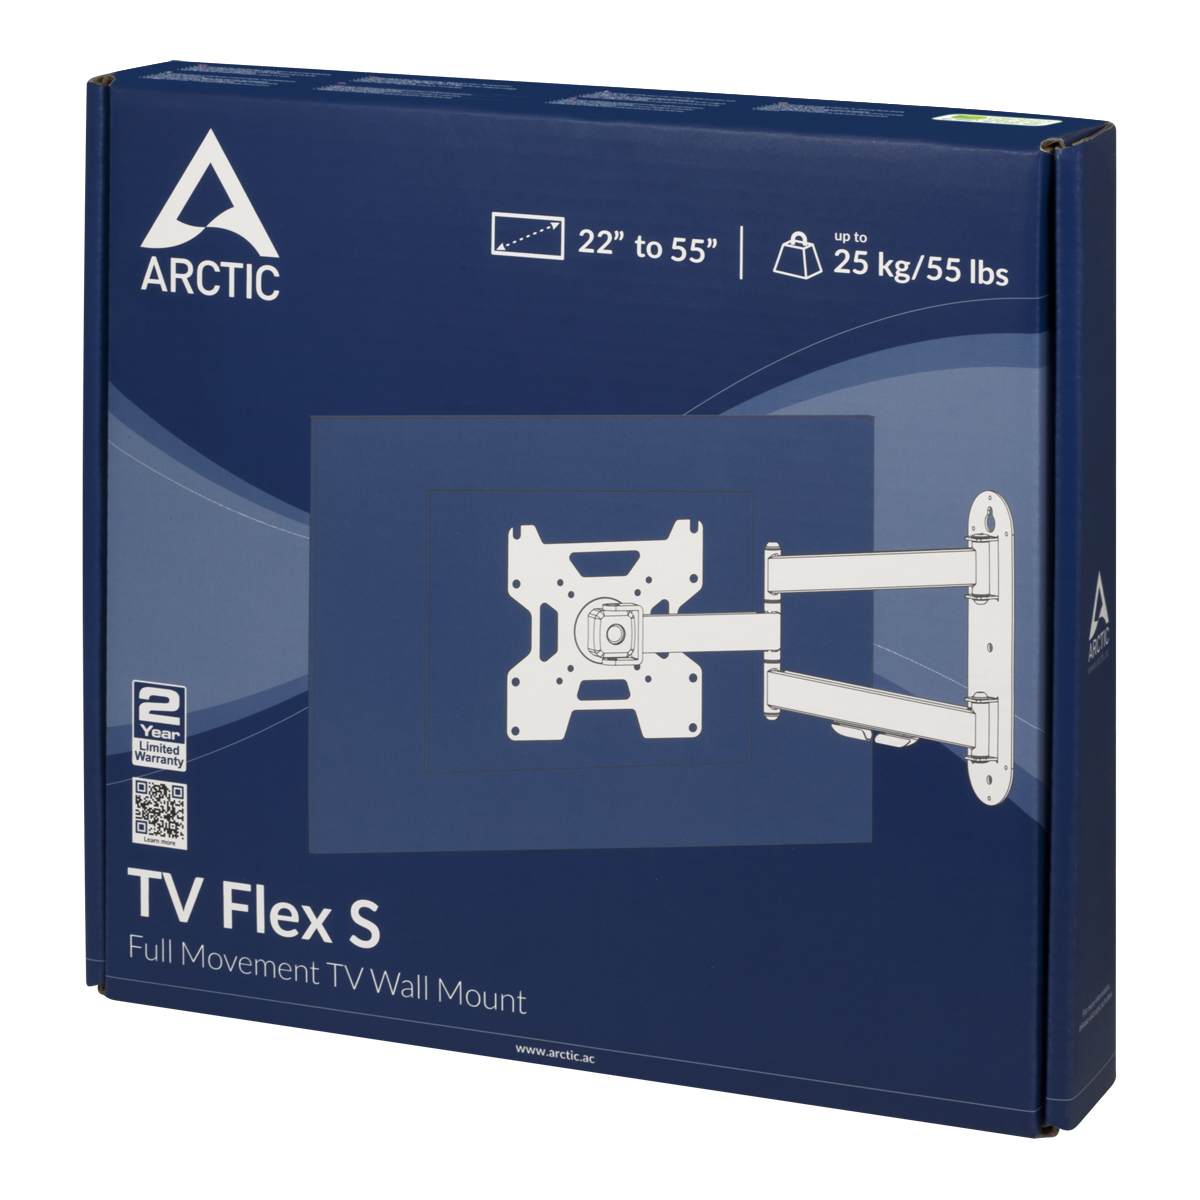 Full-Motion TV Wall Mount ARCTIC TV Flex S Packaging Front View